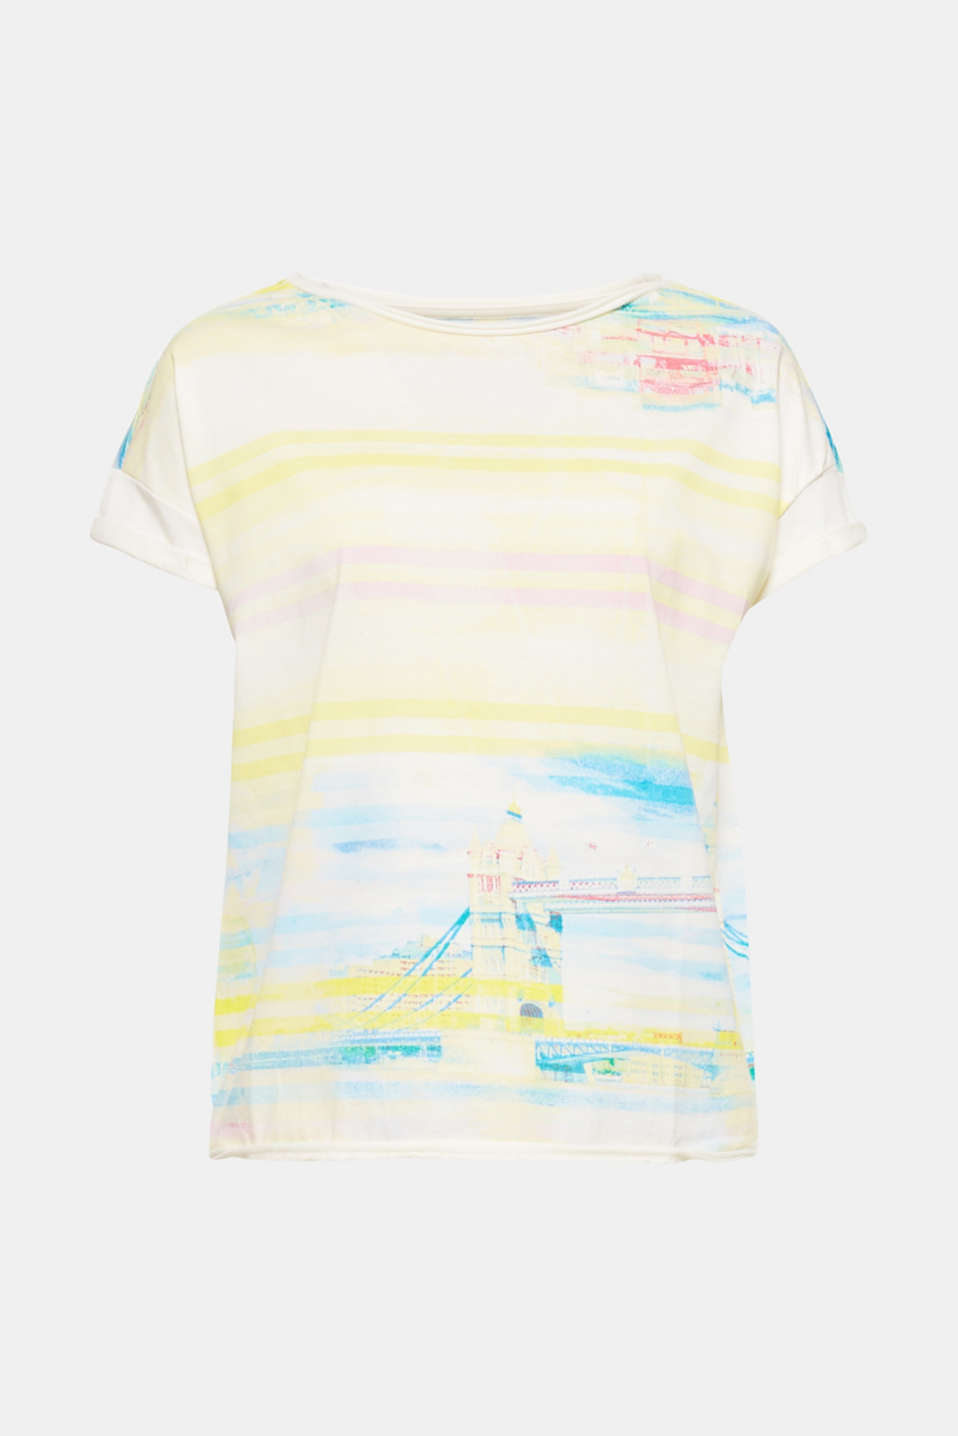 The all-over print in pastel tone stripes with a Tower Bridge motif makes this T-shirt a summery head-turner.